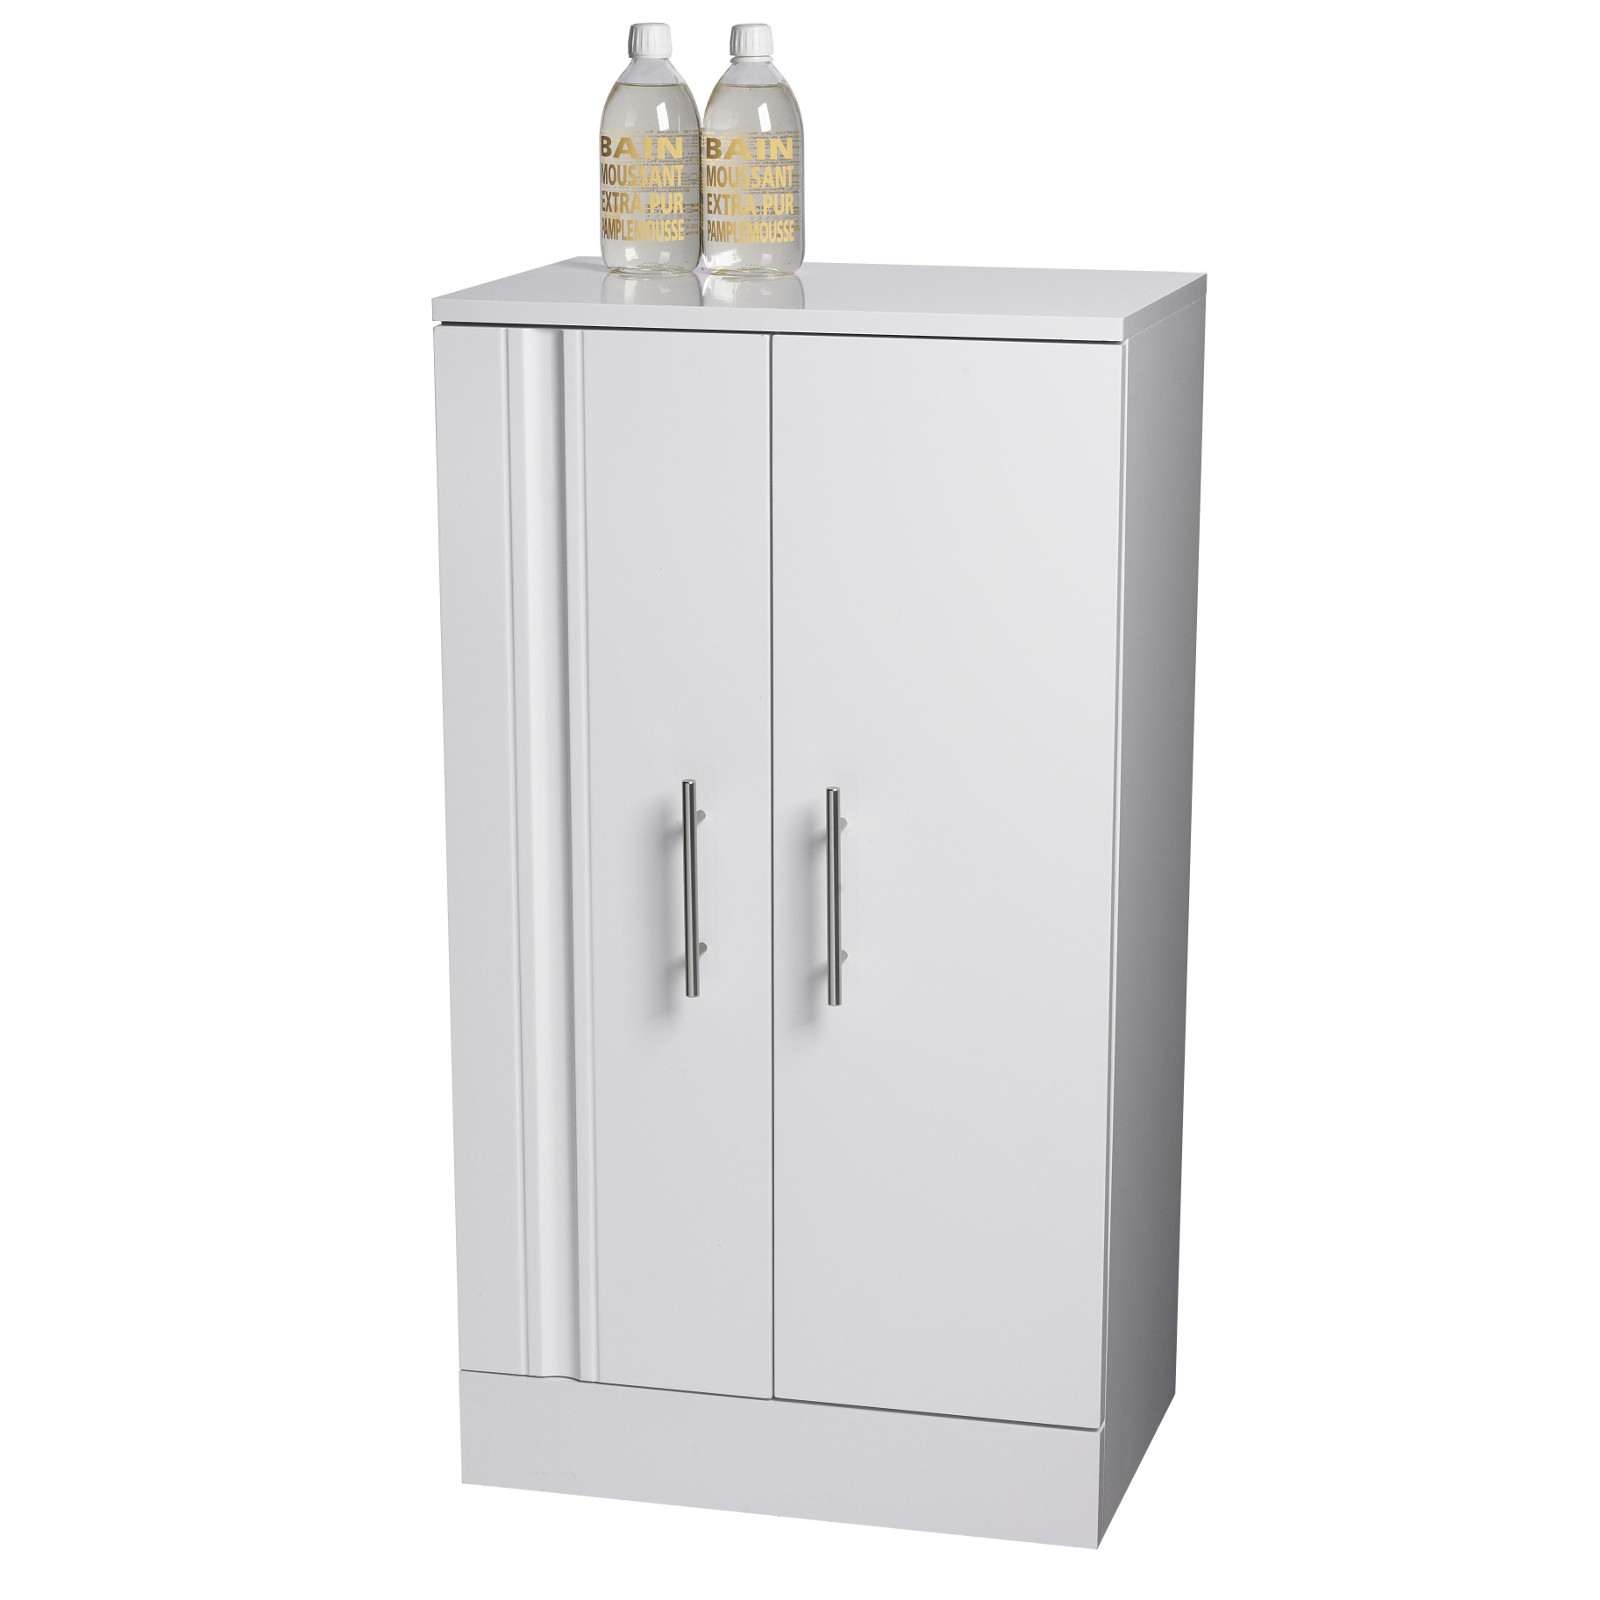 Floor Standing White Como Bathroom Cabinet W Soft Close Double Doors within dimensions 1600 X 1600